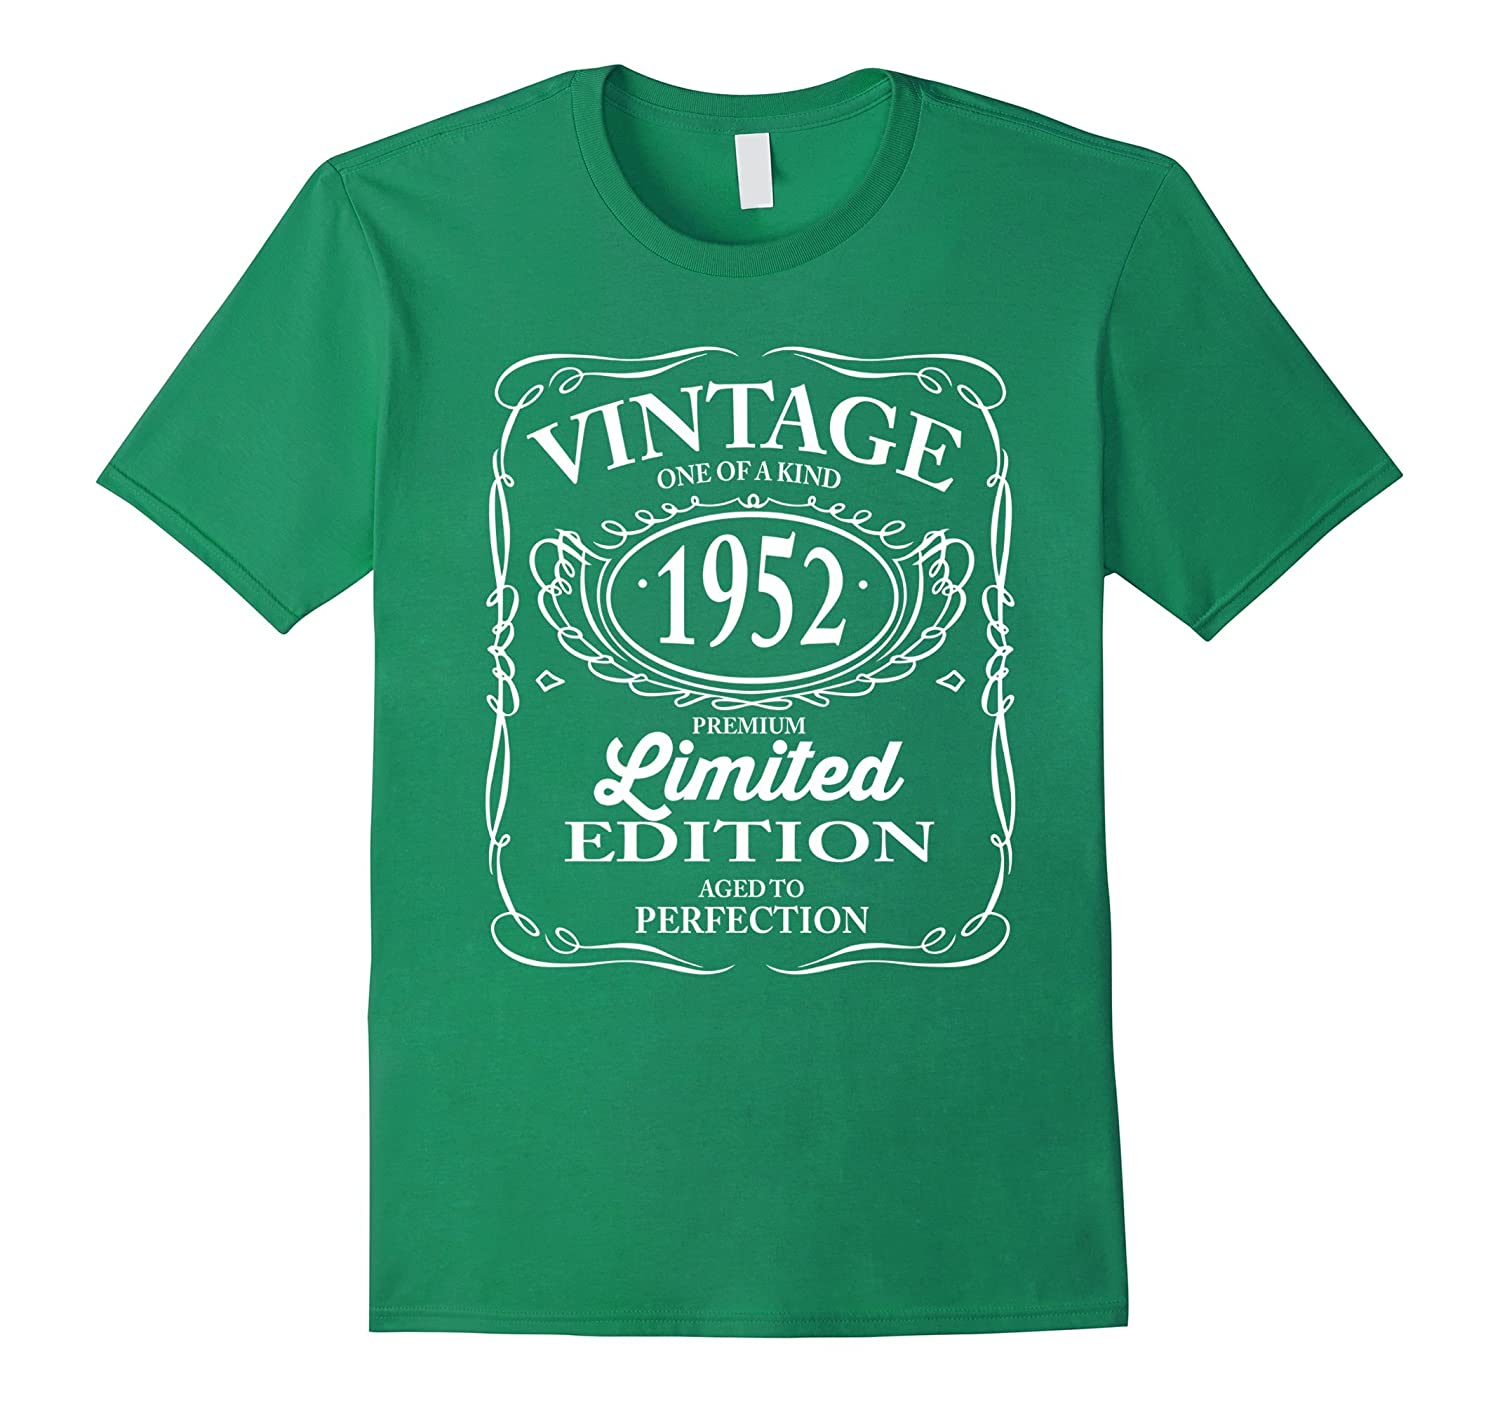 Vintage One Of a Kind 1952 Funny 65th Birthday T shirts Men-Vaci